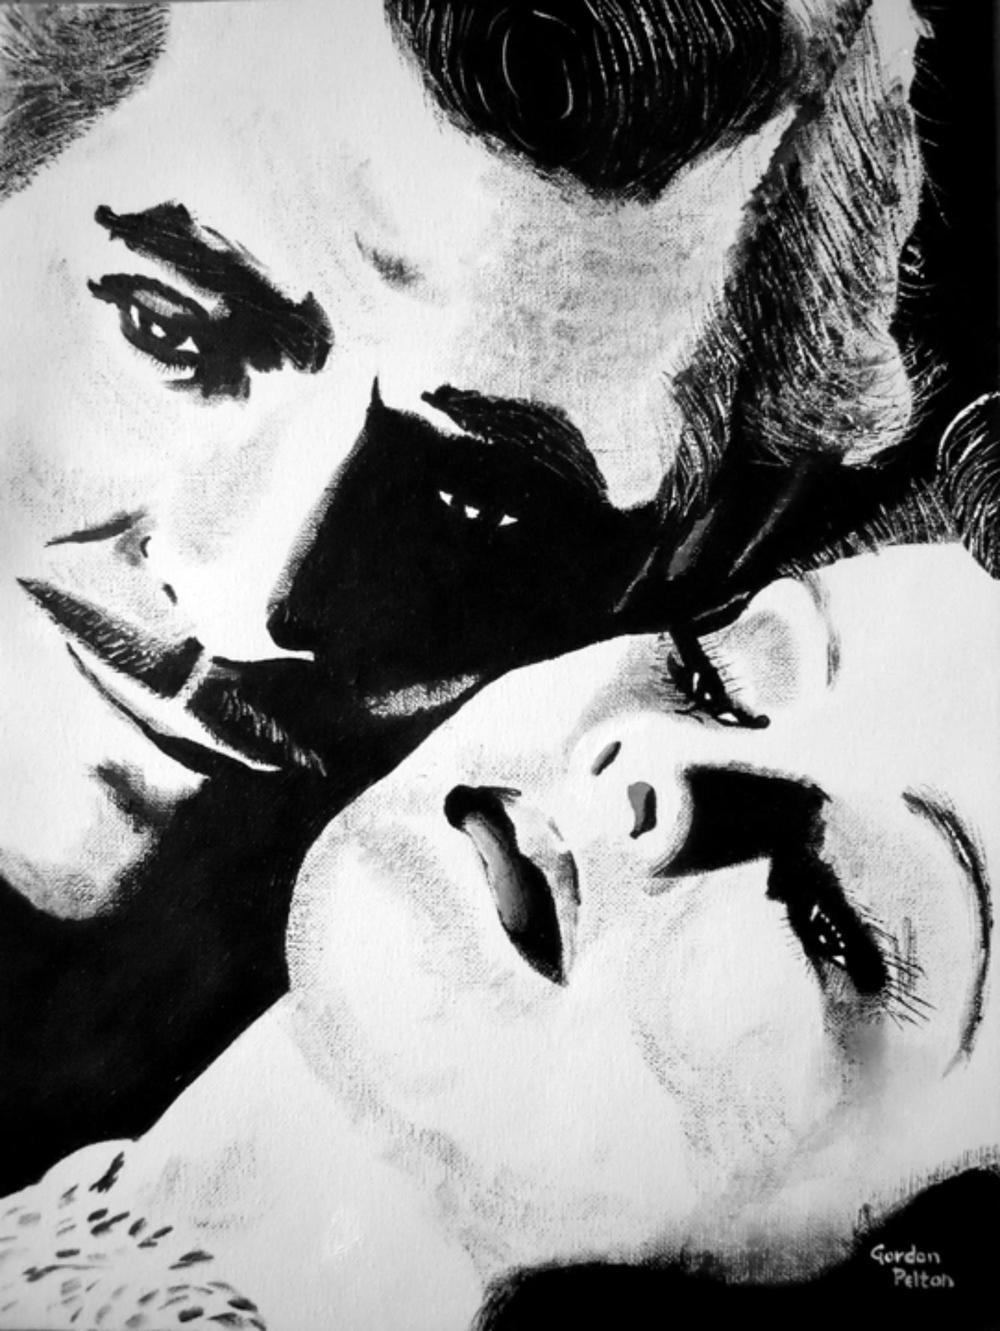 "Clark Gable and Vivien Leigh 12"" x 16"" Unframed-Canvas Acrylic $750 Giclee Copies Available PLACE ORDER"